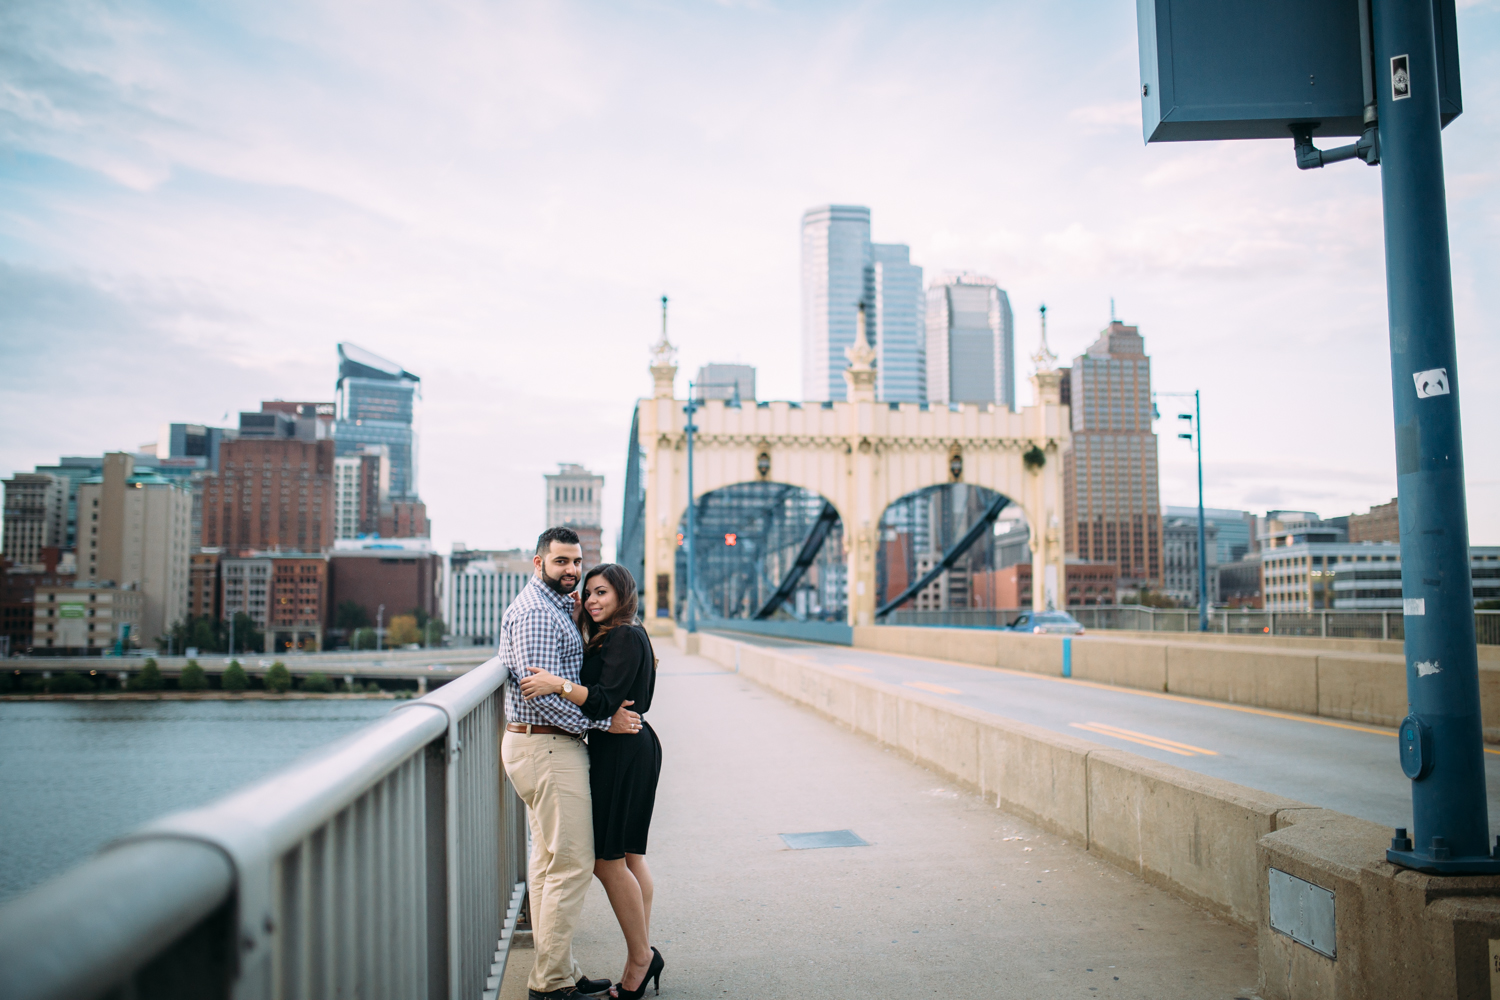 Ashley-reed-photography-pittsburgh-engagement-engagementphotography-engagementphotographer-stationsquare-statio-square-pittsburghengagementphotography-31.jpg